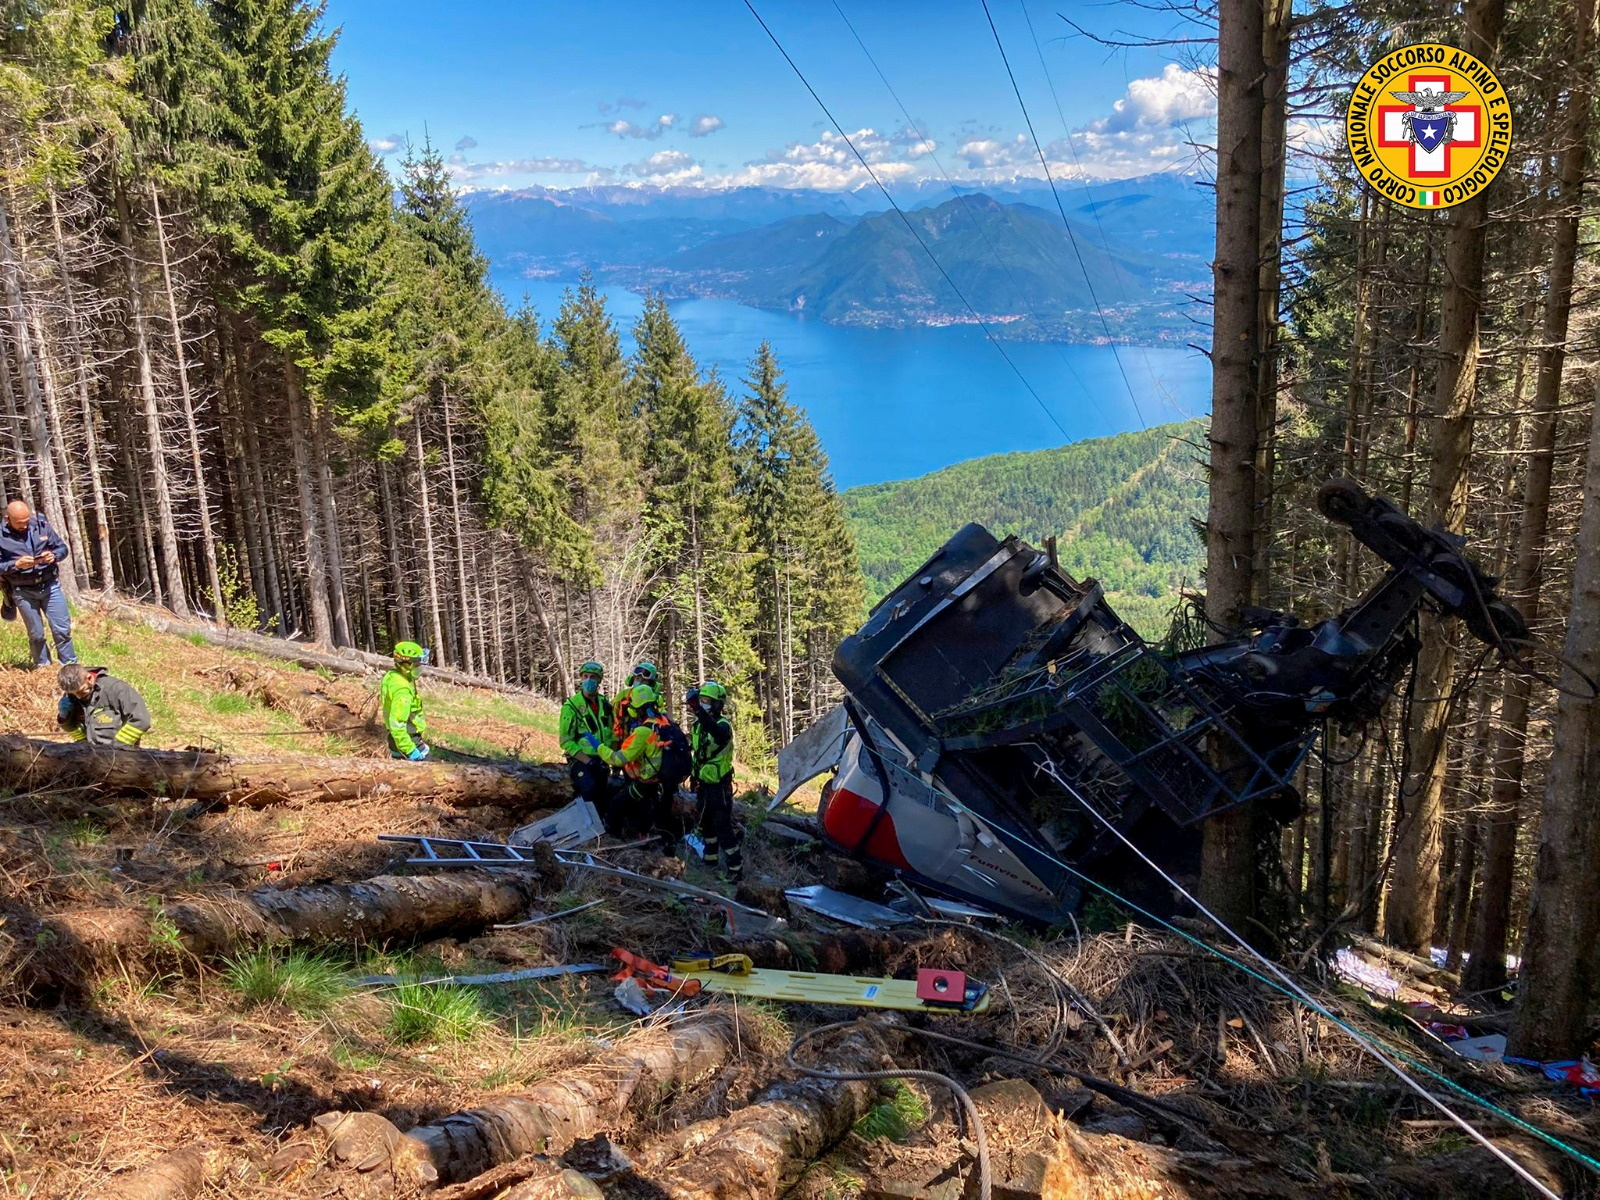 Five-Year-Old Survivor of Italy Cable Car Crash to be Moved Out of ICU